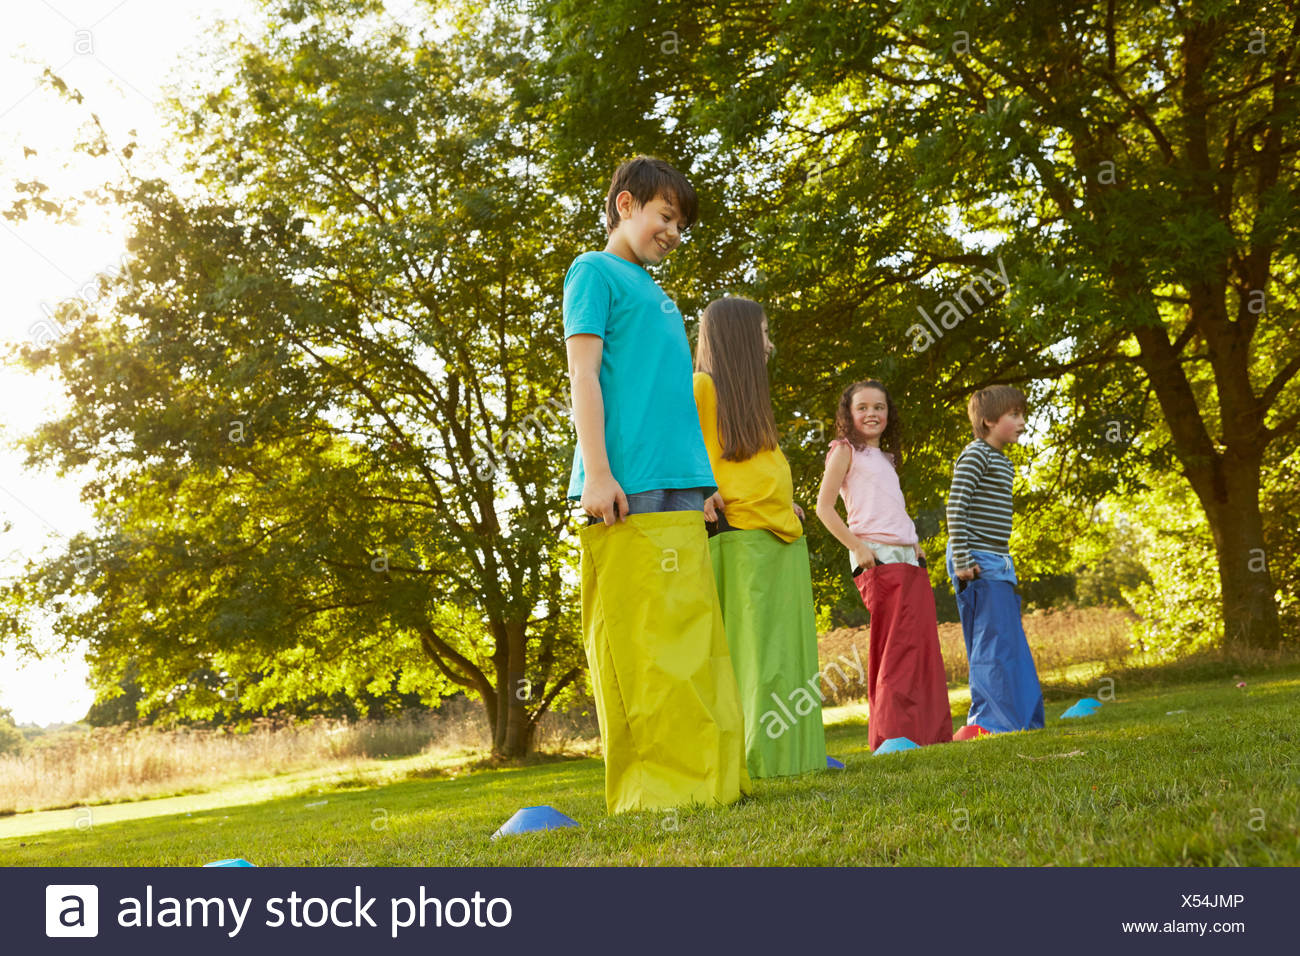 Girls and boys on start line for sack race in park Stock Photo